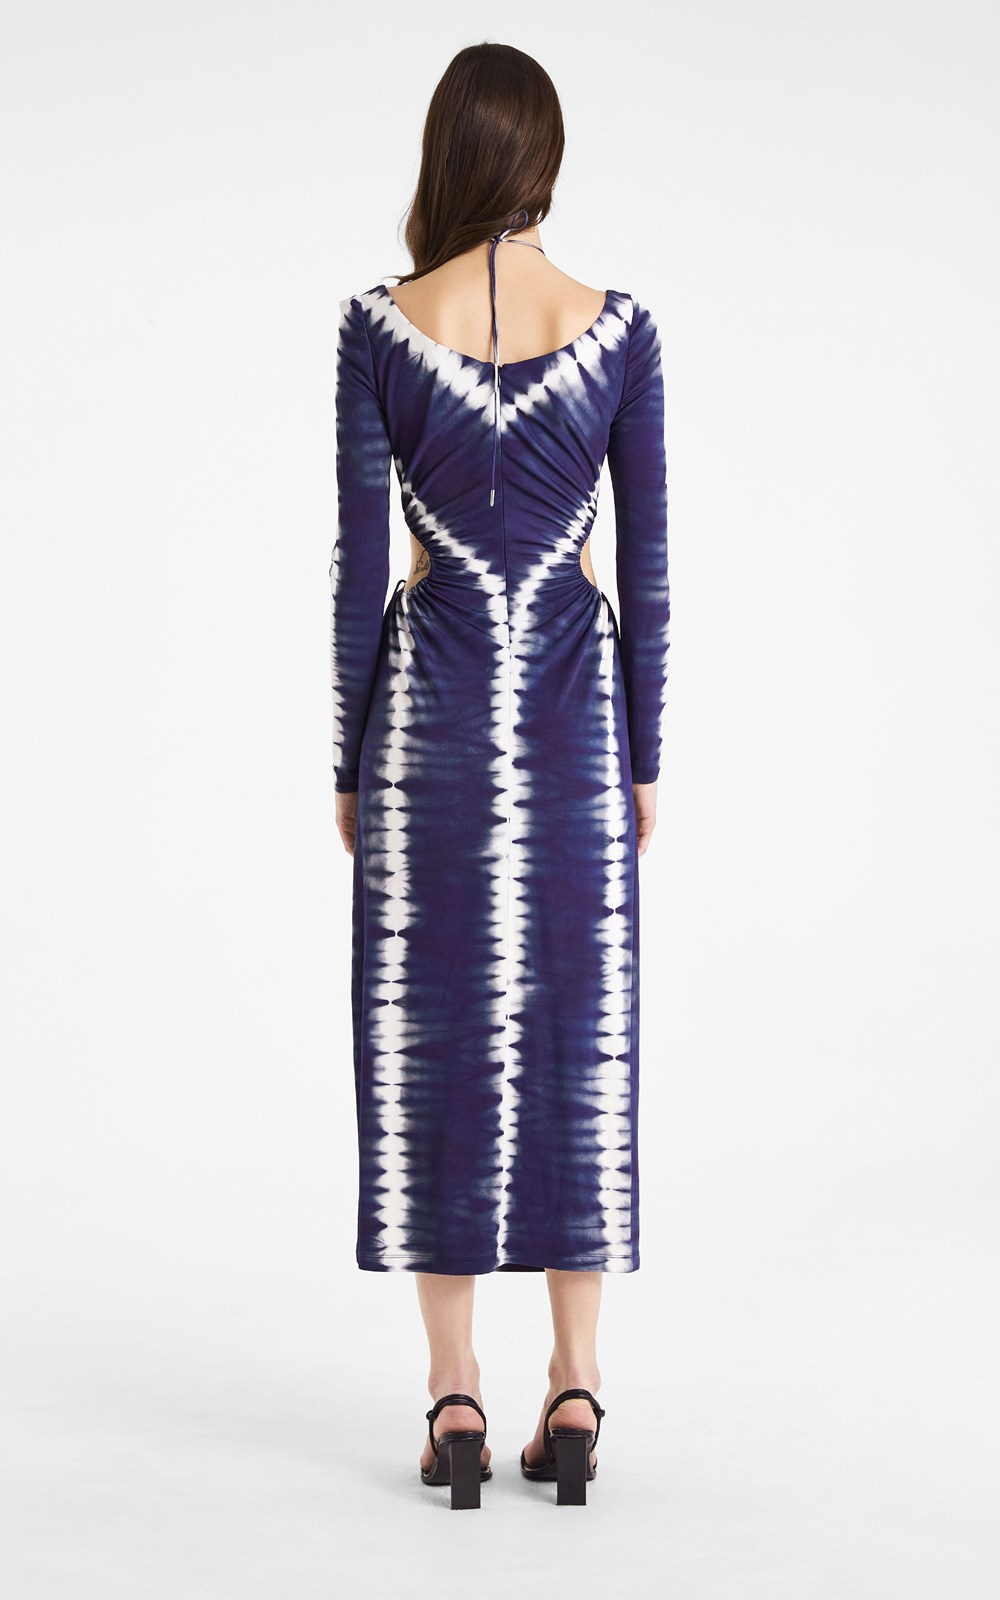 Dresses  | PRINTED SHIBORI DOUBLE TIE VISCOSE JERSEY GATHER DRESS